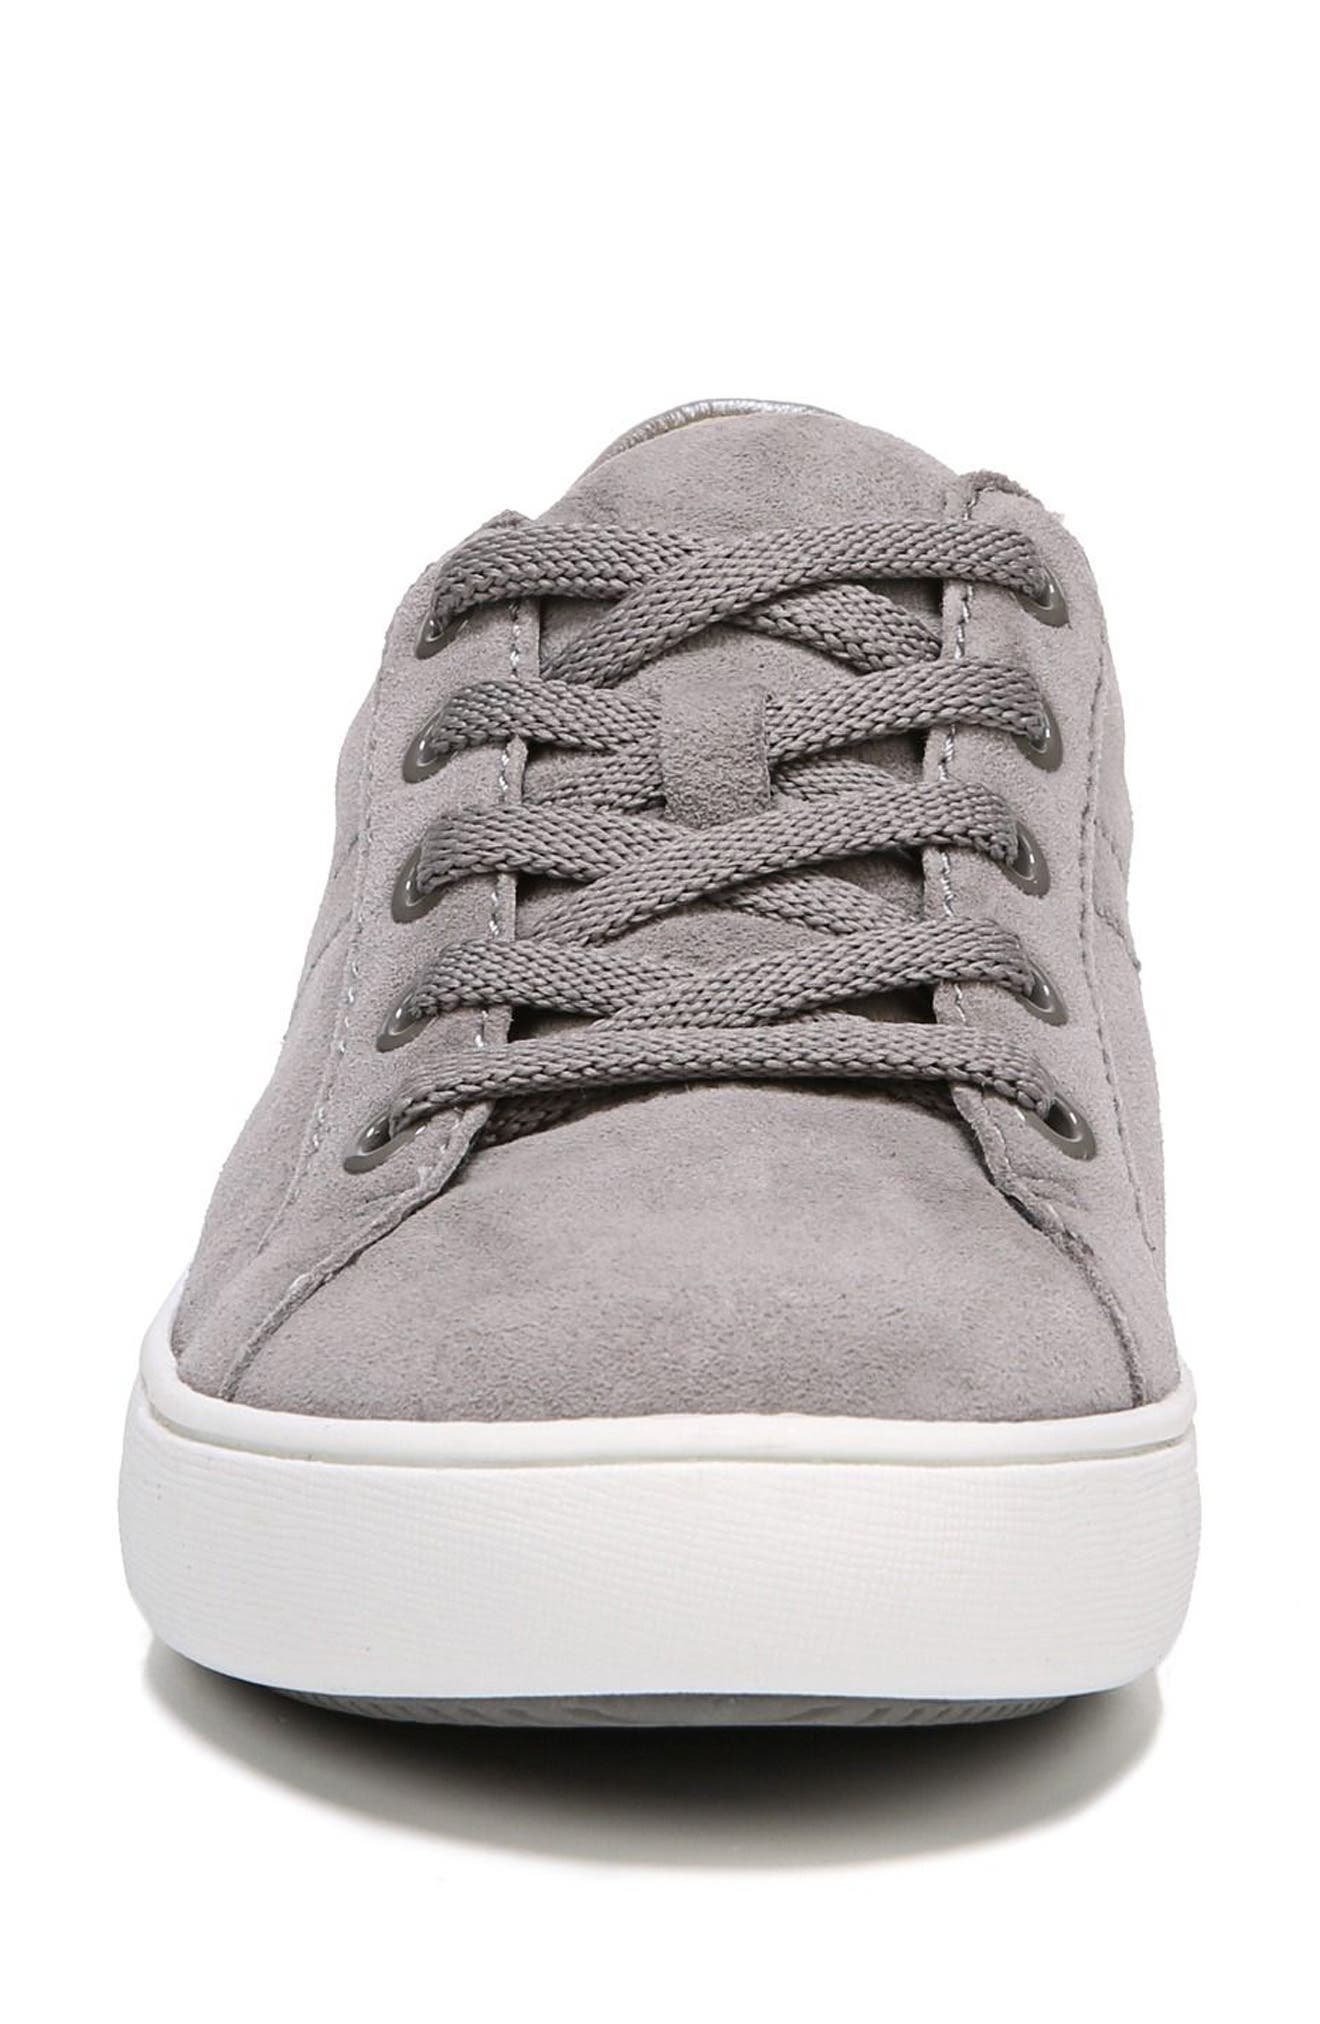 NATURALIZER,                             Morrison Sneaker,                             Alternate thumbnail 4, color,                             GREY SUEDE